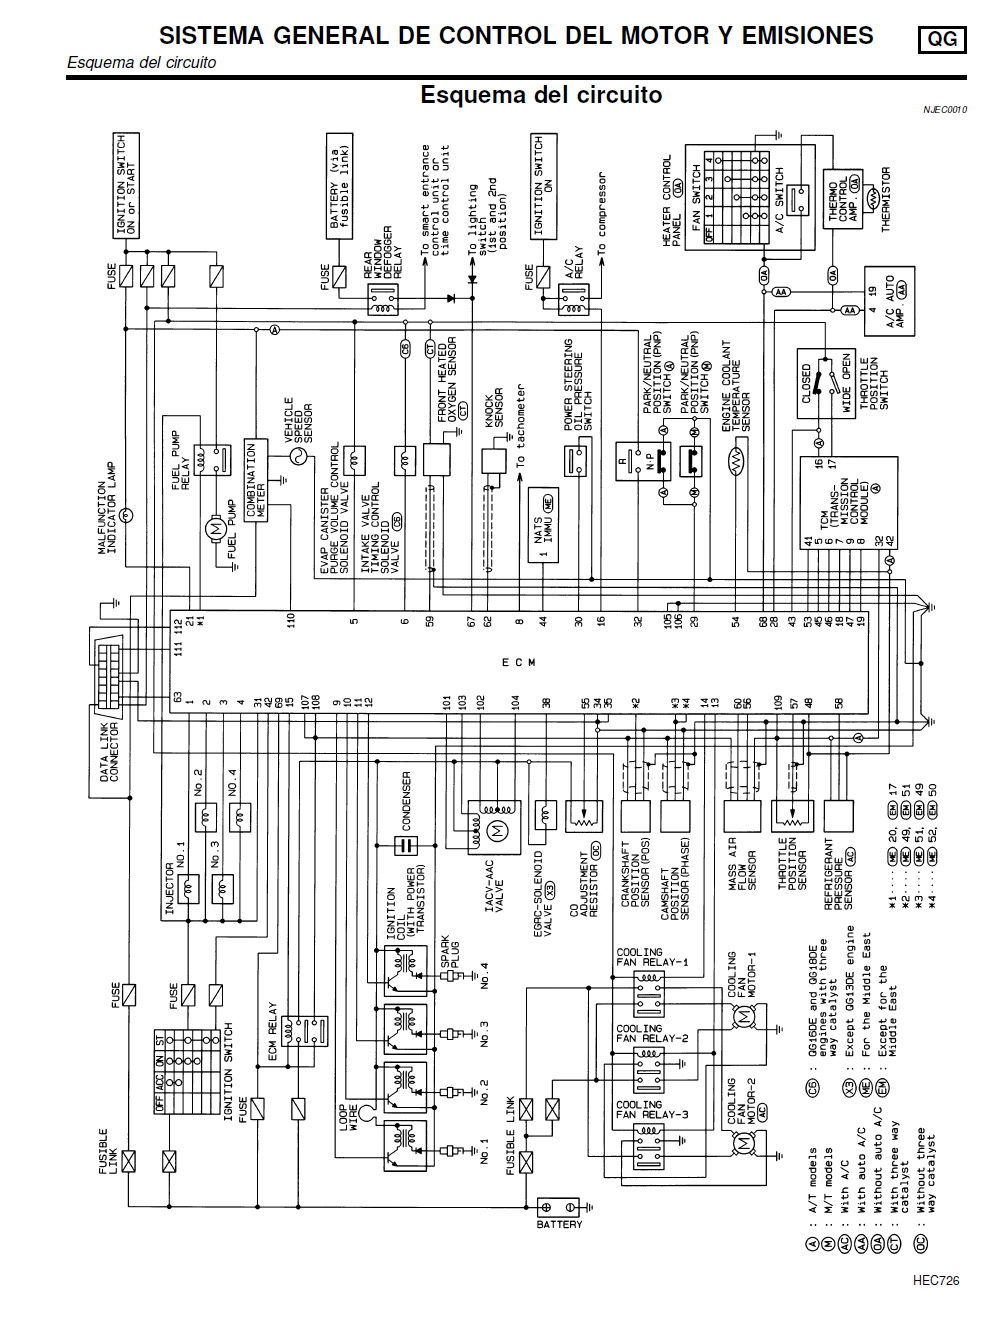 Chevy Spark Engine Diagram furthermore Bmw 335i Fuse Box Location further Kia Sportage Rear Wiper Motor Diagram additionally 1998 Saturn Sc2 Transmission Diagram moreover Product product id 659483. on acura cabin air filter location